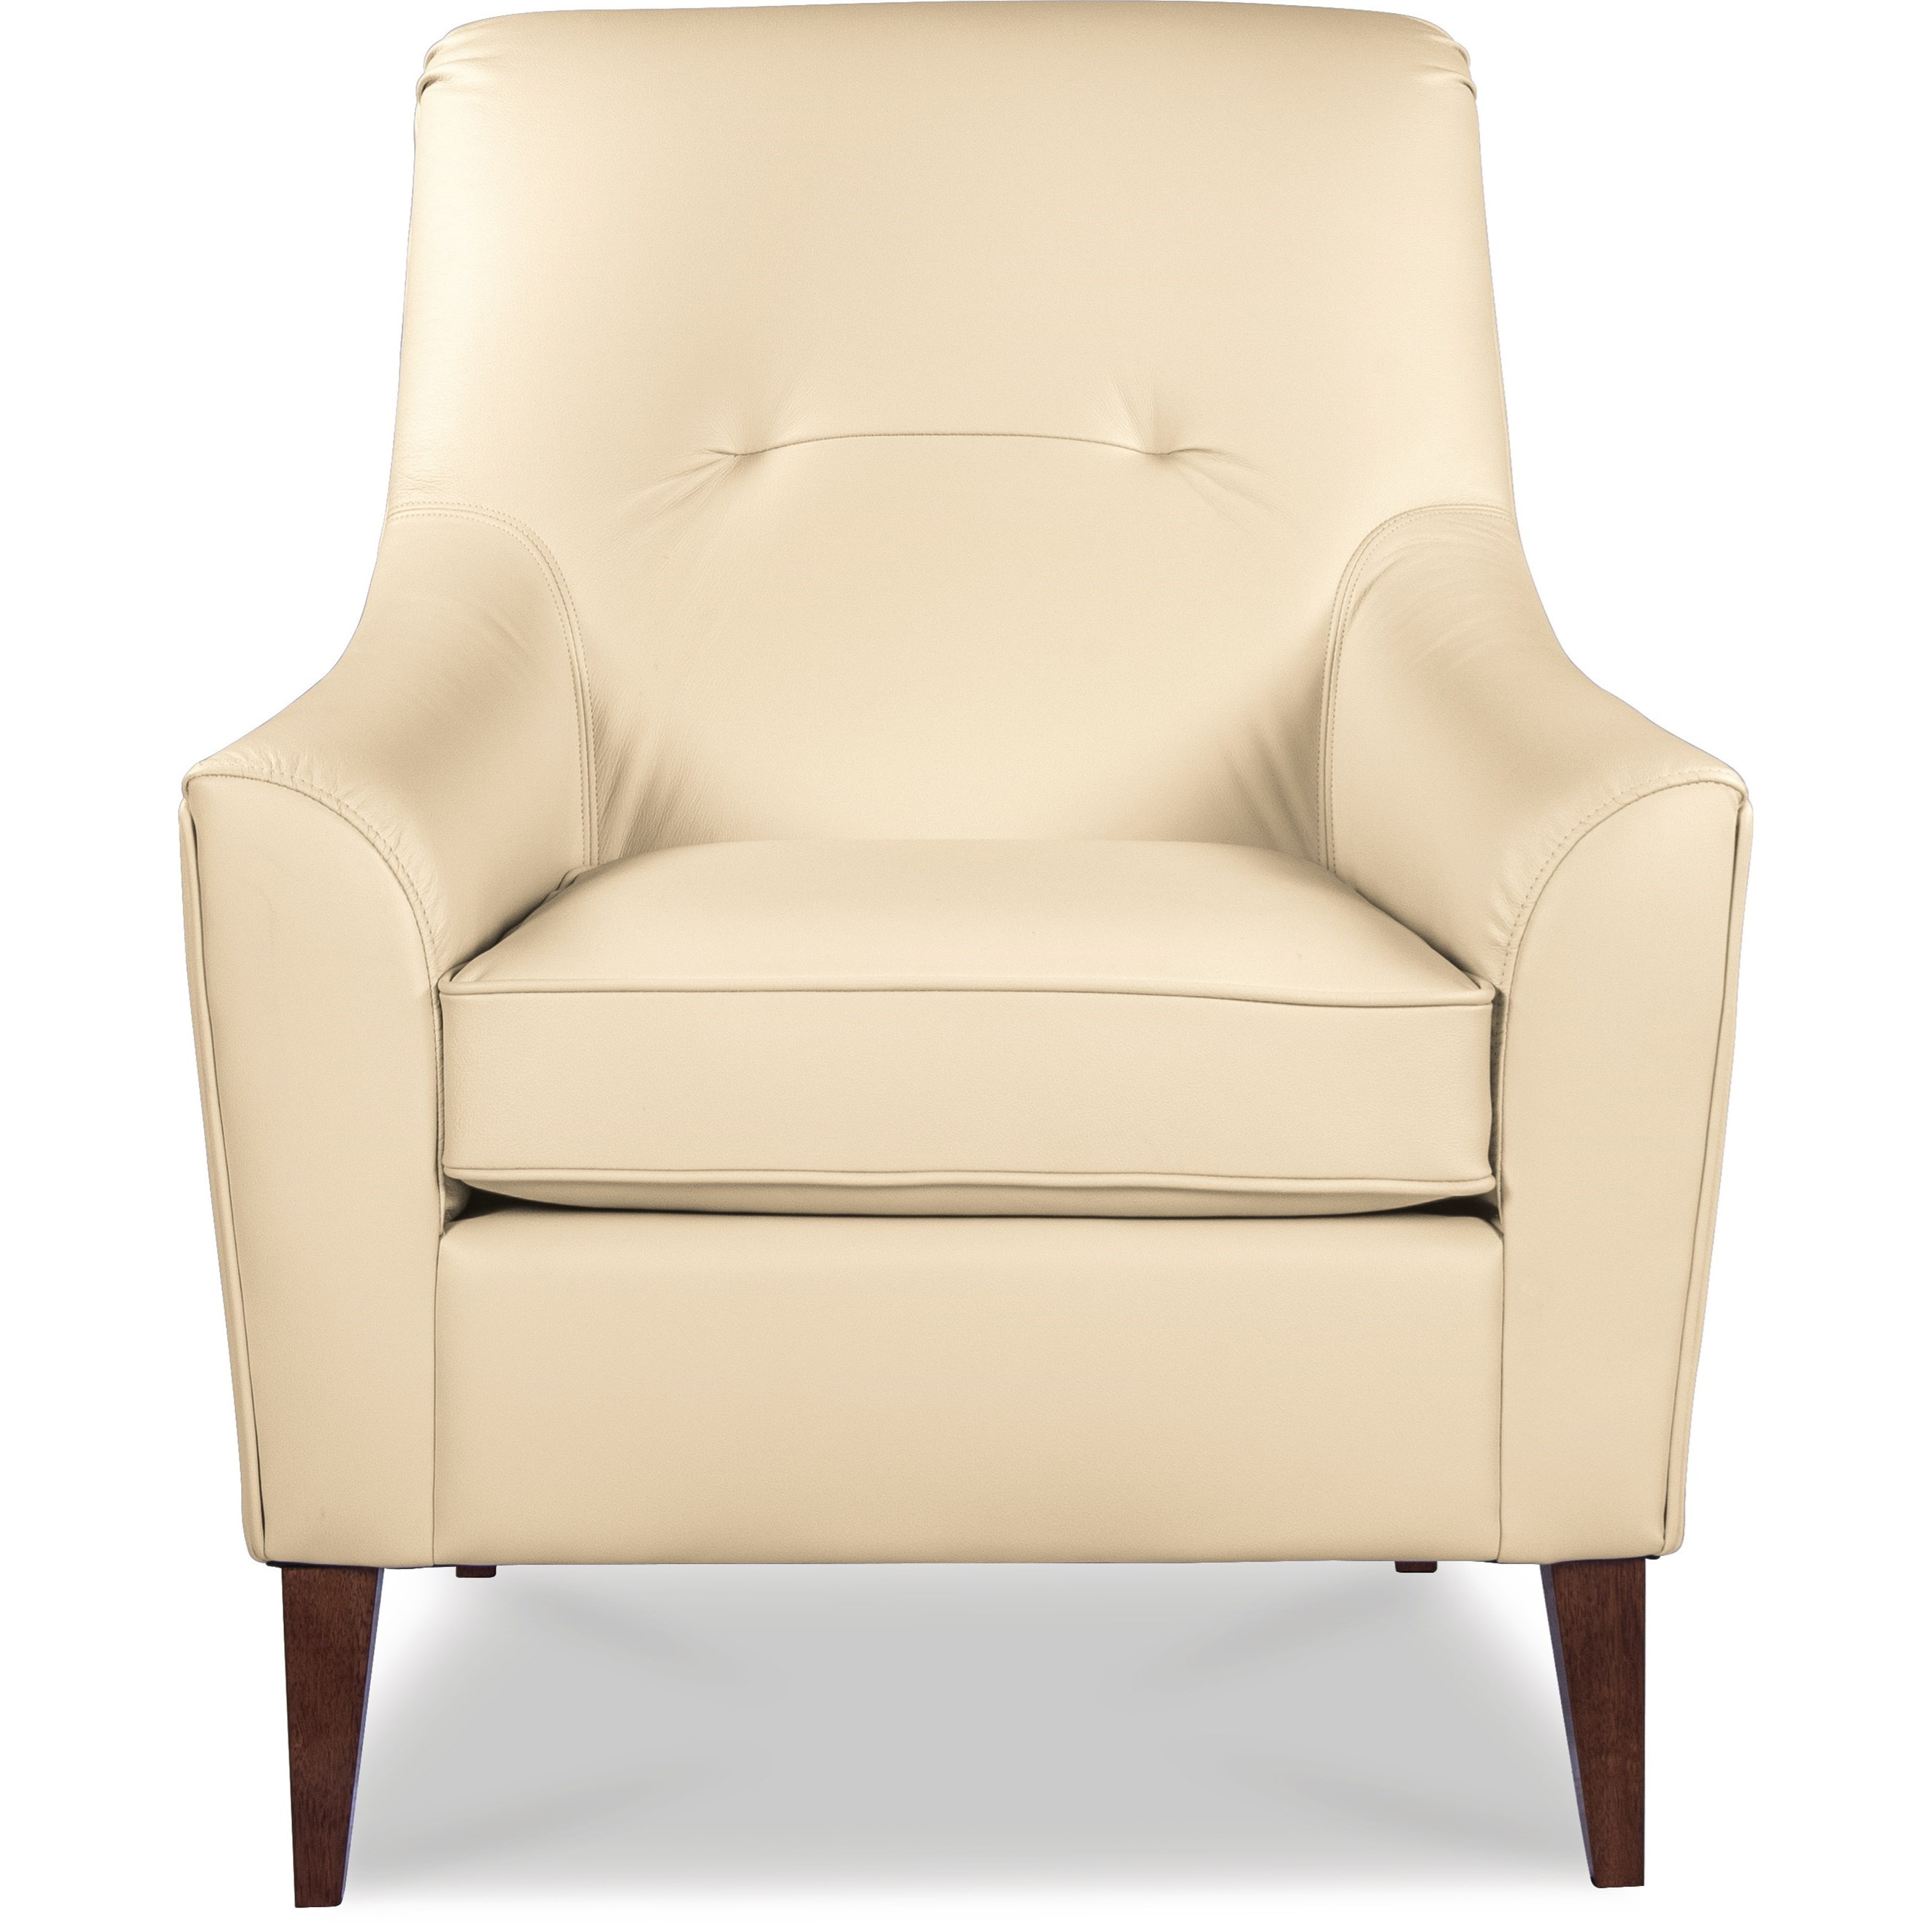 Barista Accent Chair with Premier ComfortCore Cushion